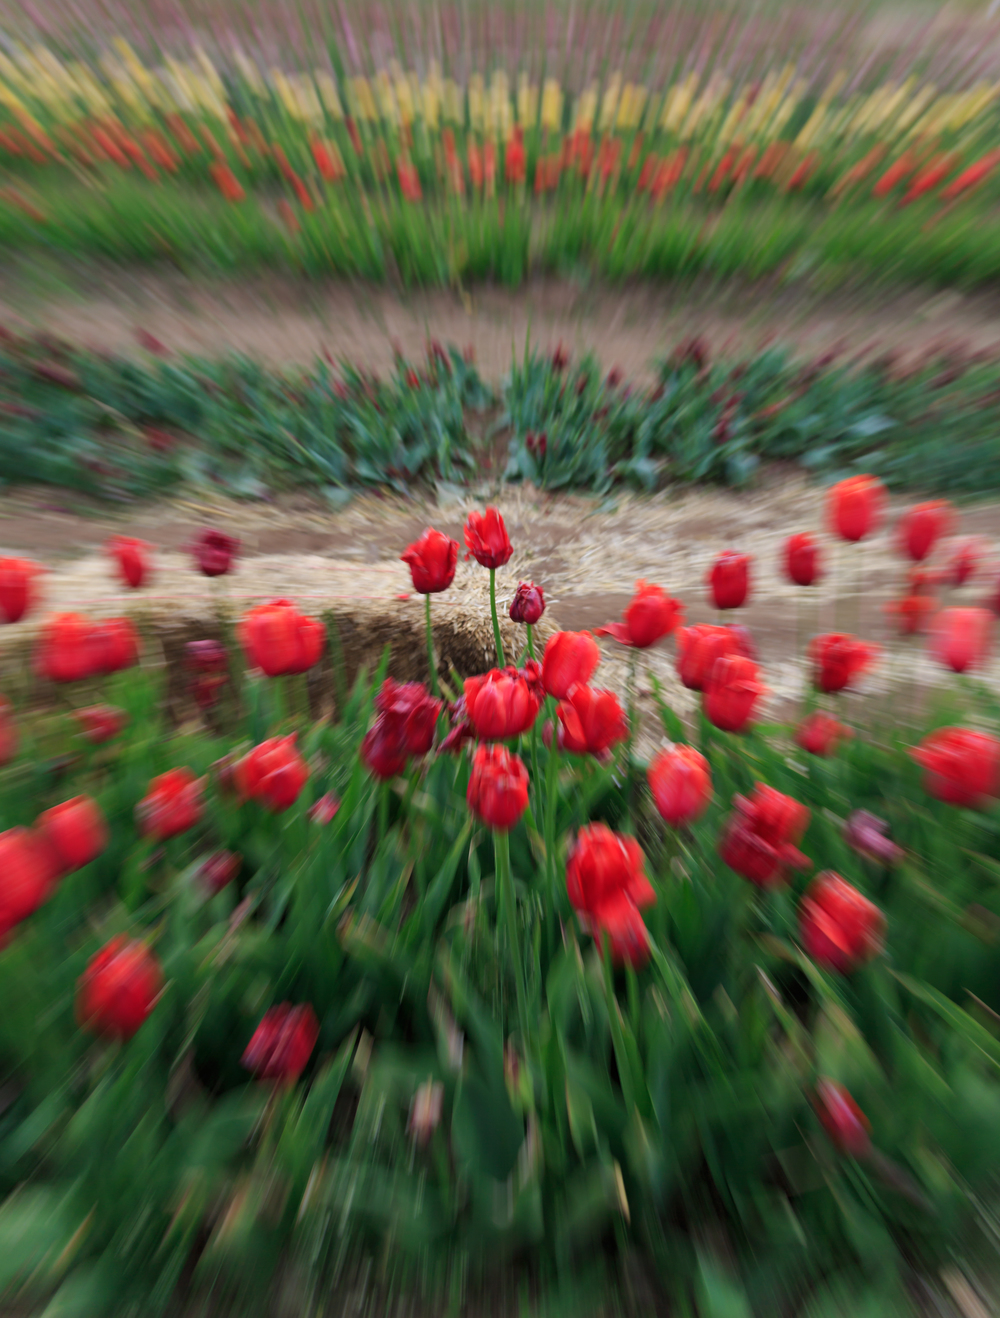 This was another zoom technique, this time I do have some flowers in focus and I love how it make the image feel sort of 3D.